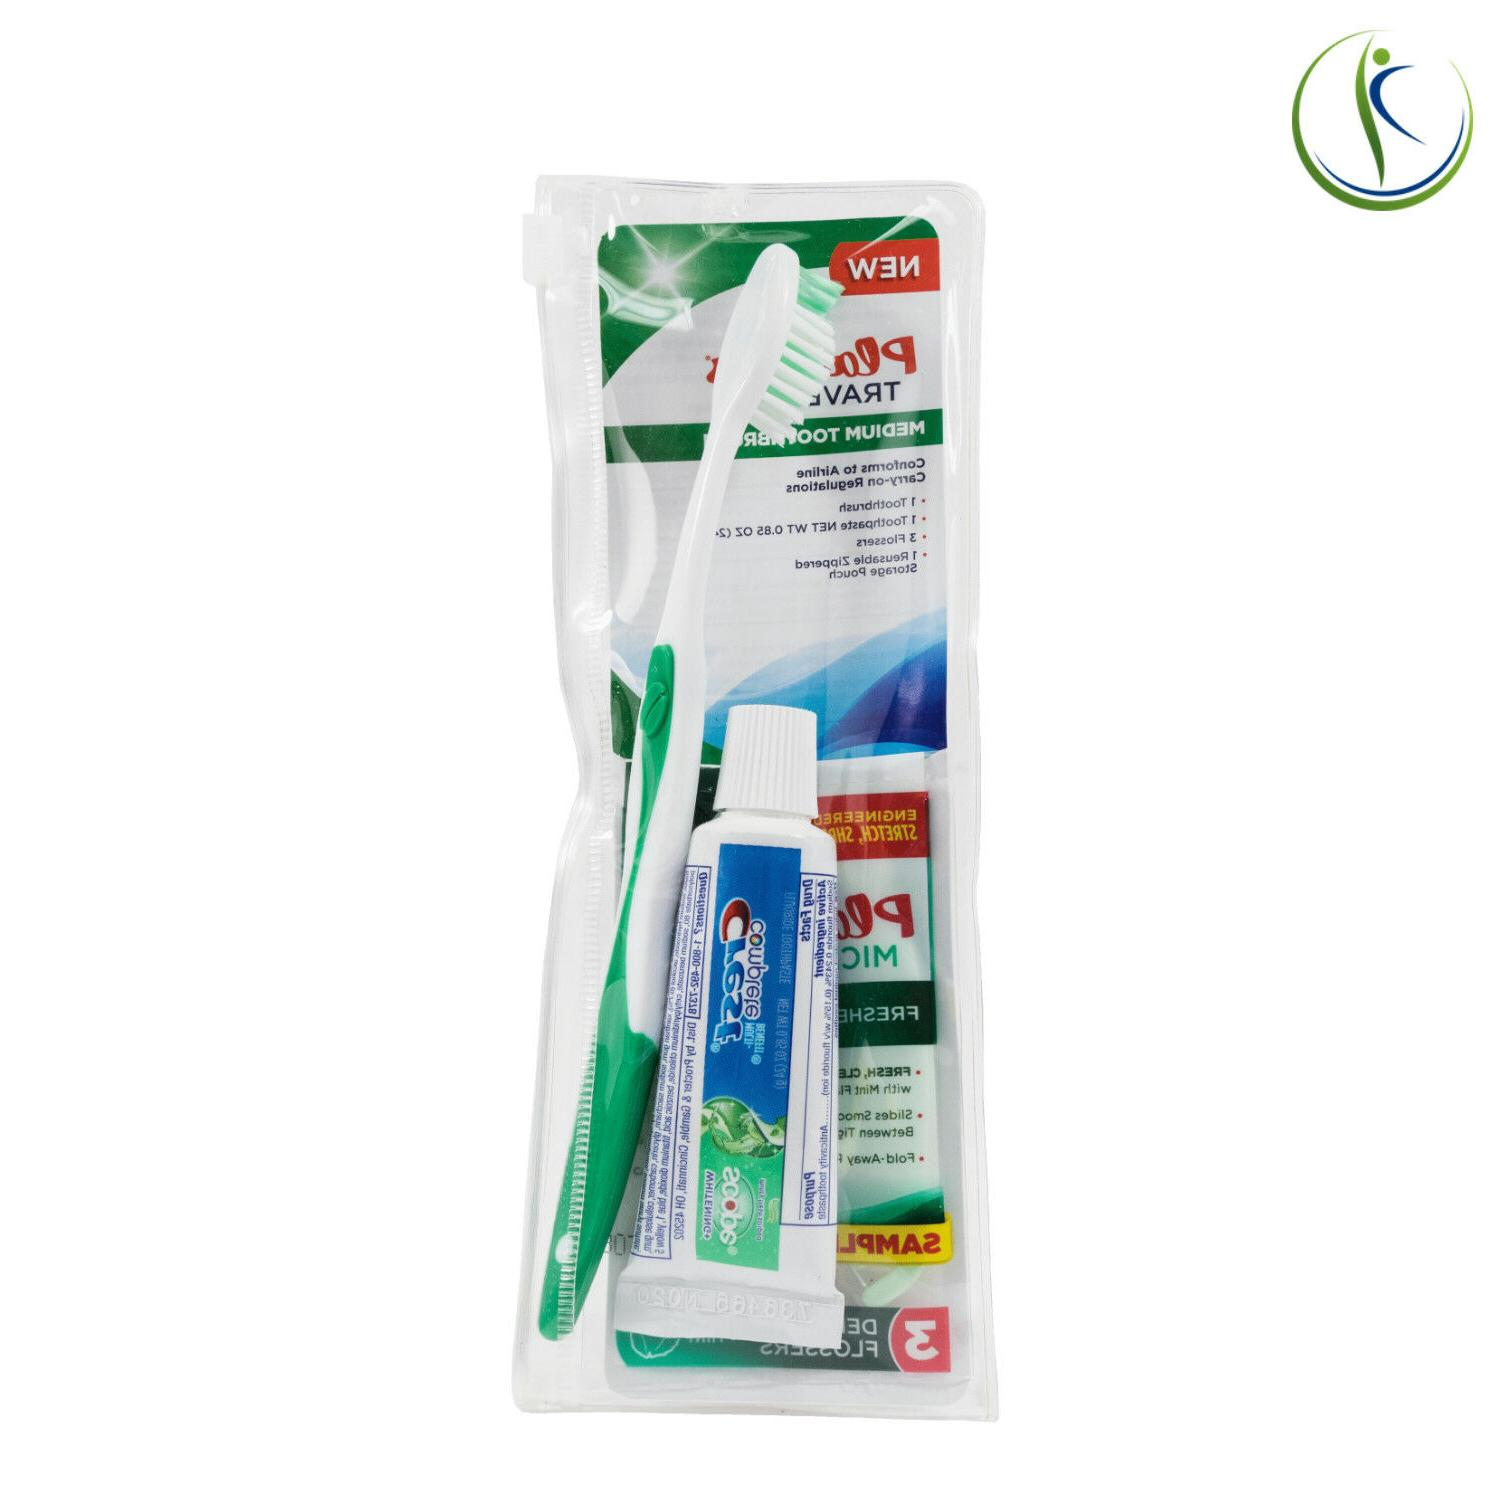 Plackers Dental Toothbrush Oral Travel Kit w/ Crest Paste &